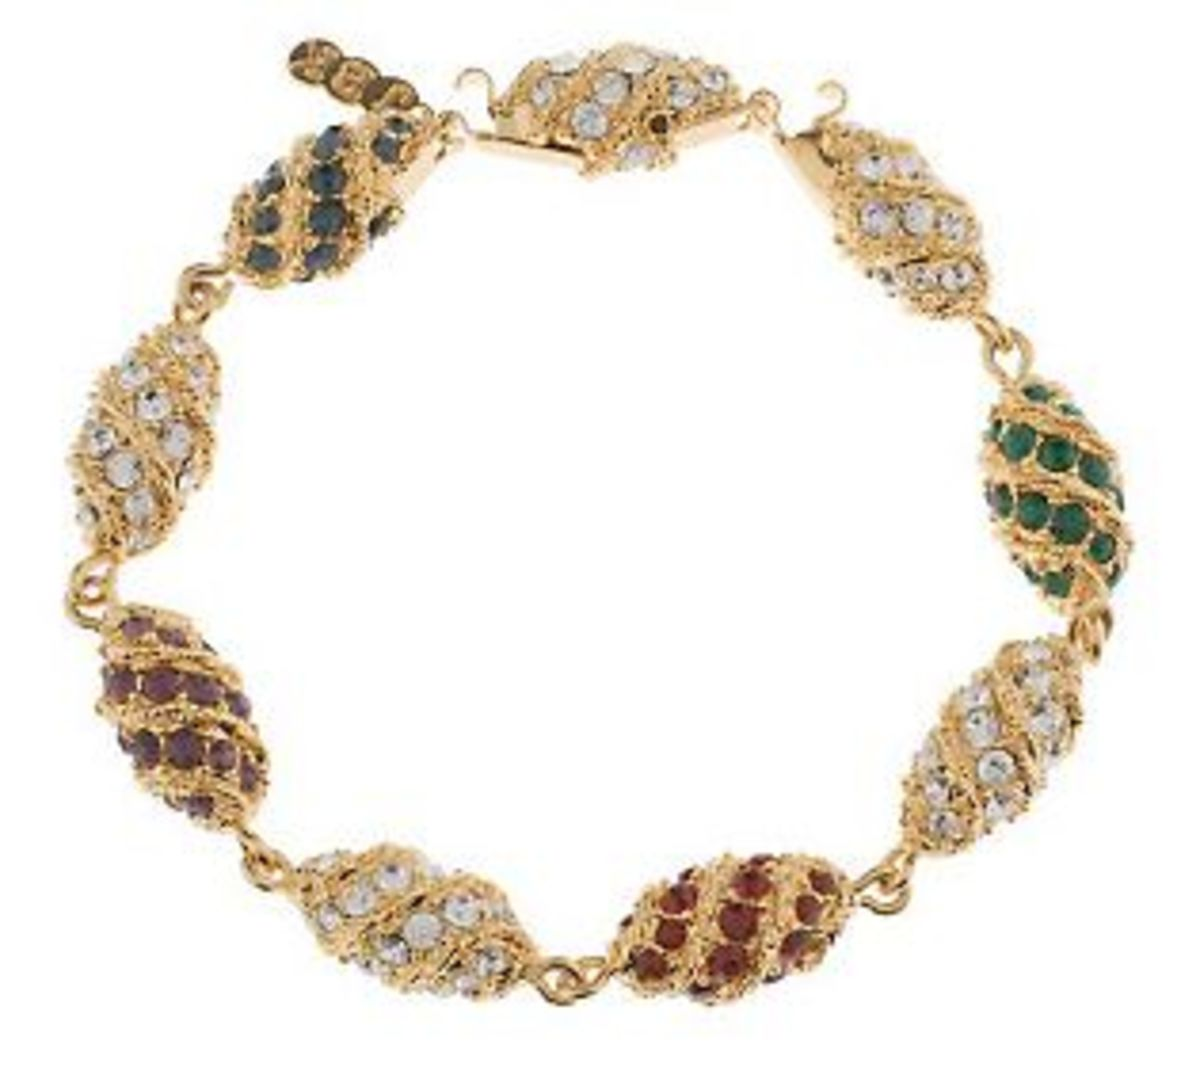 A replica of the Jackie Kennedy Onasis bracelet that was presented by Aristotle Onasis on Easter and cost $312,000